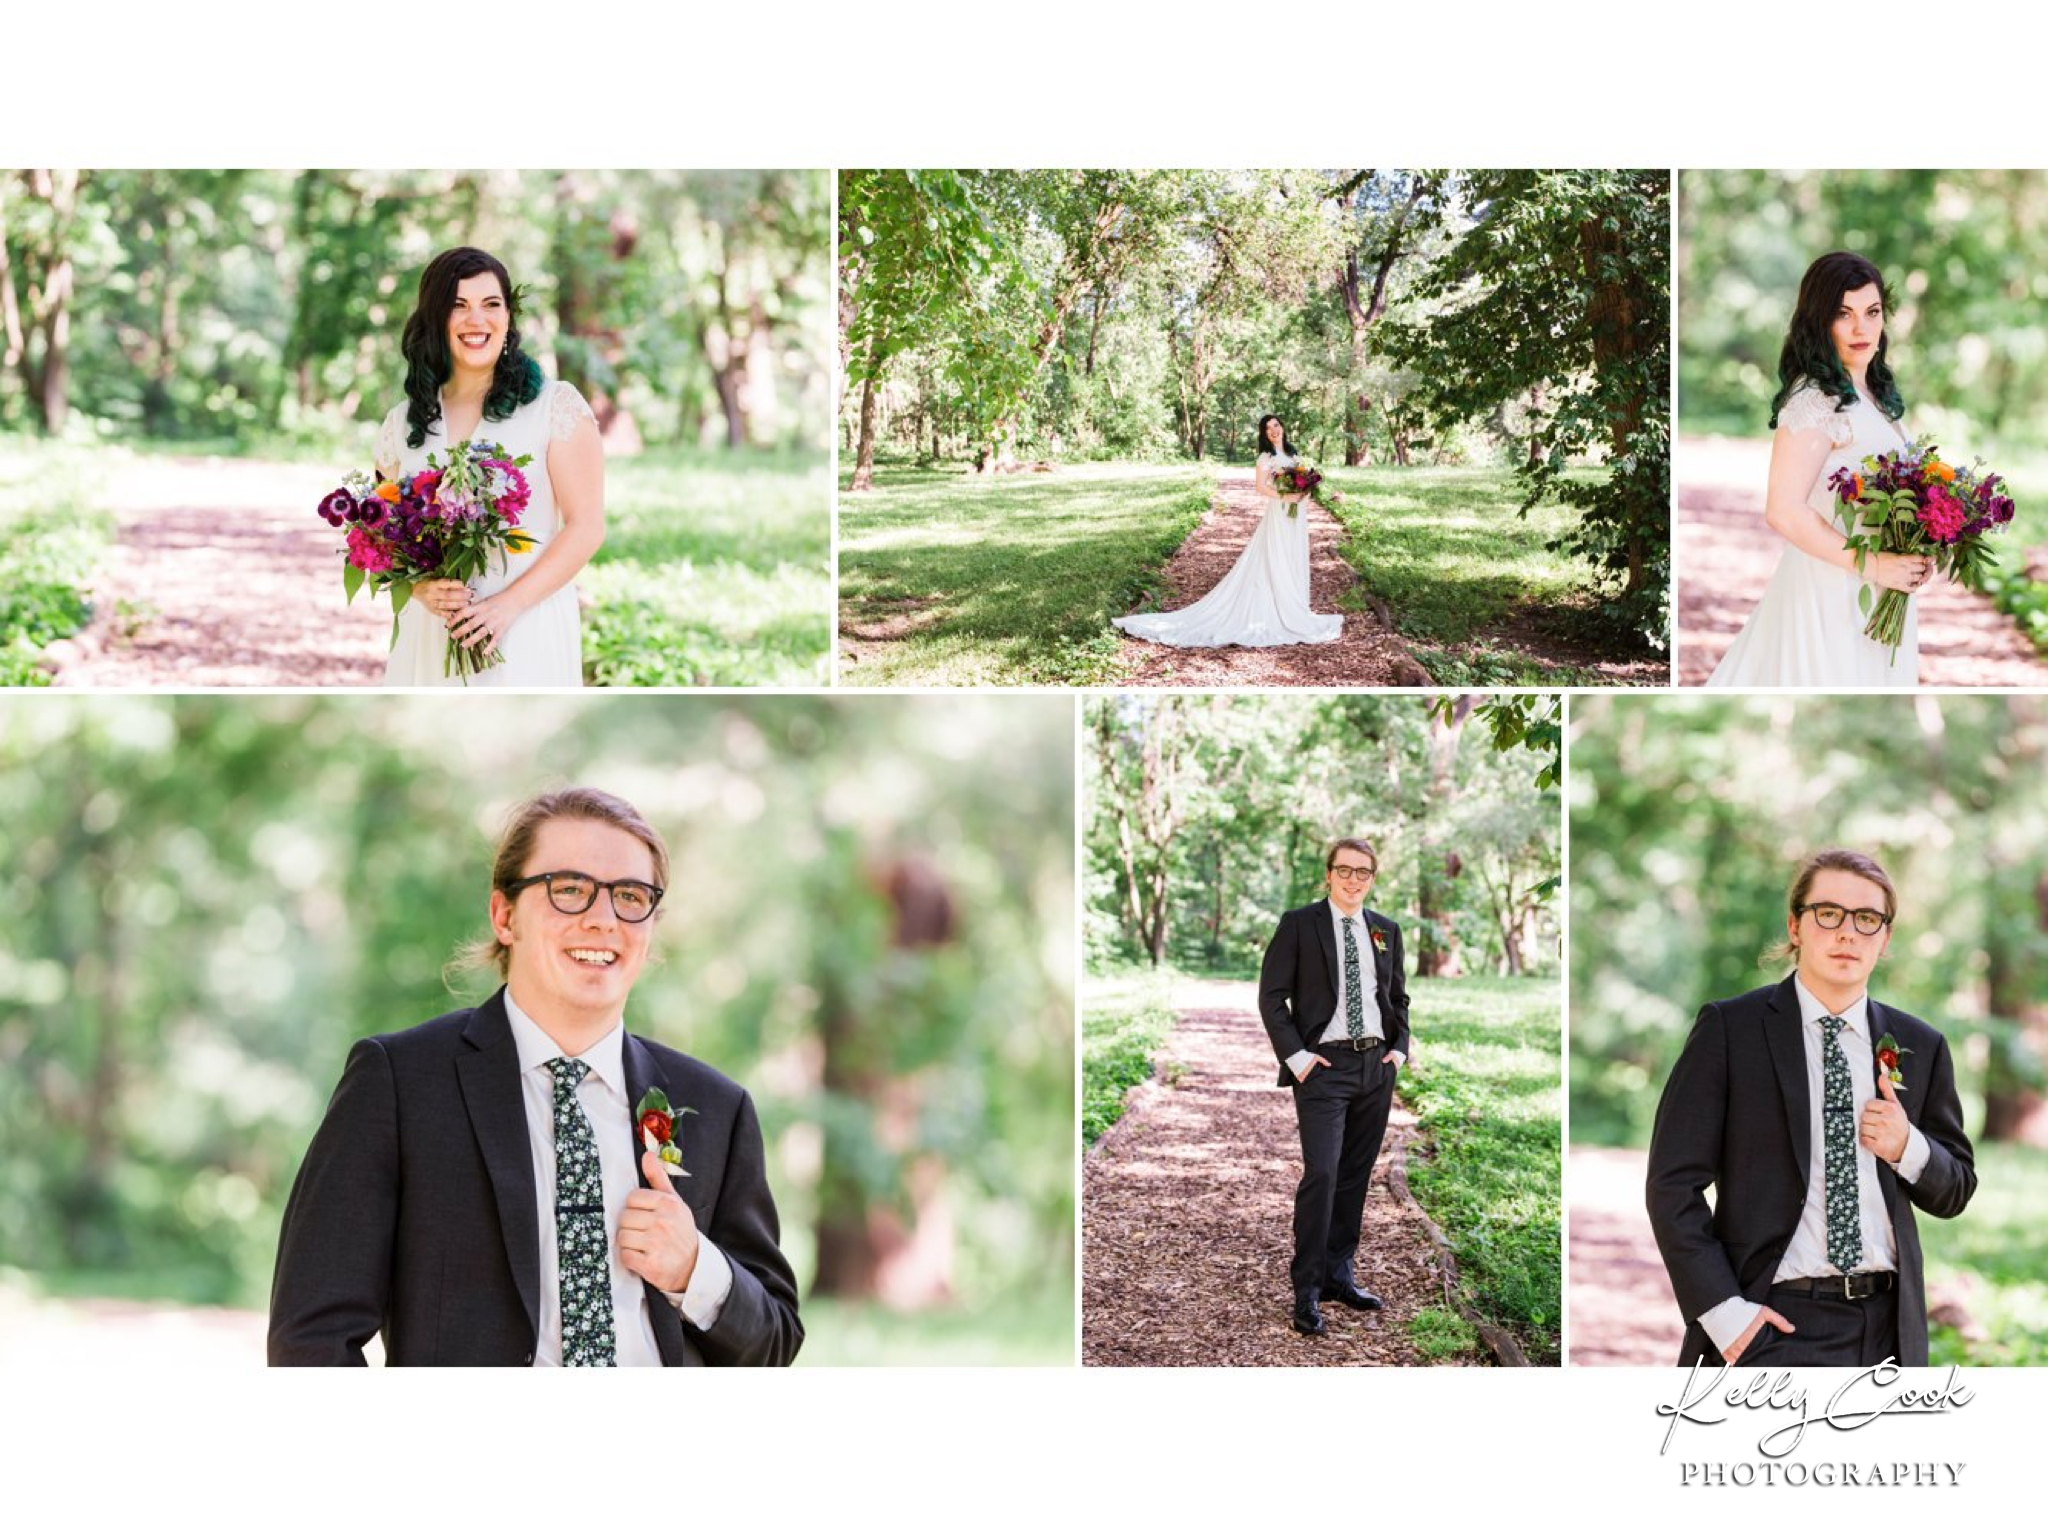 Portraits of bride and groom in Tower Grove Park in St. Louis